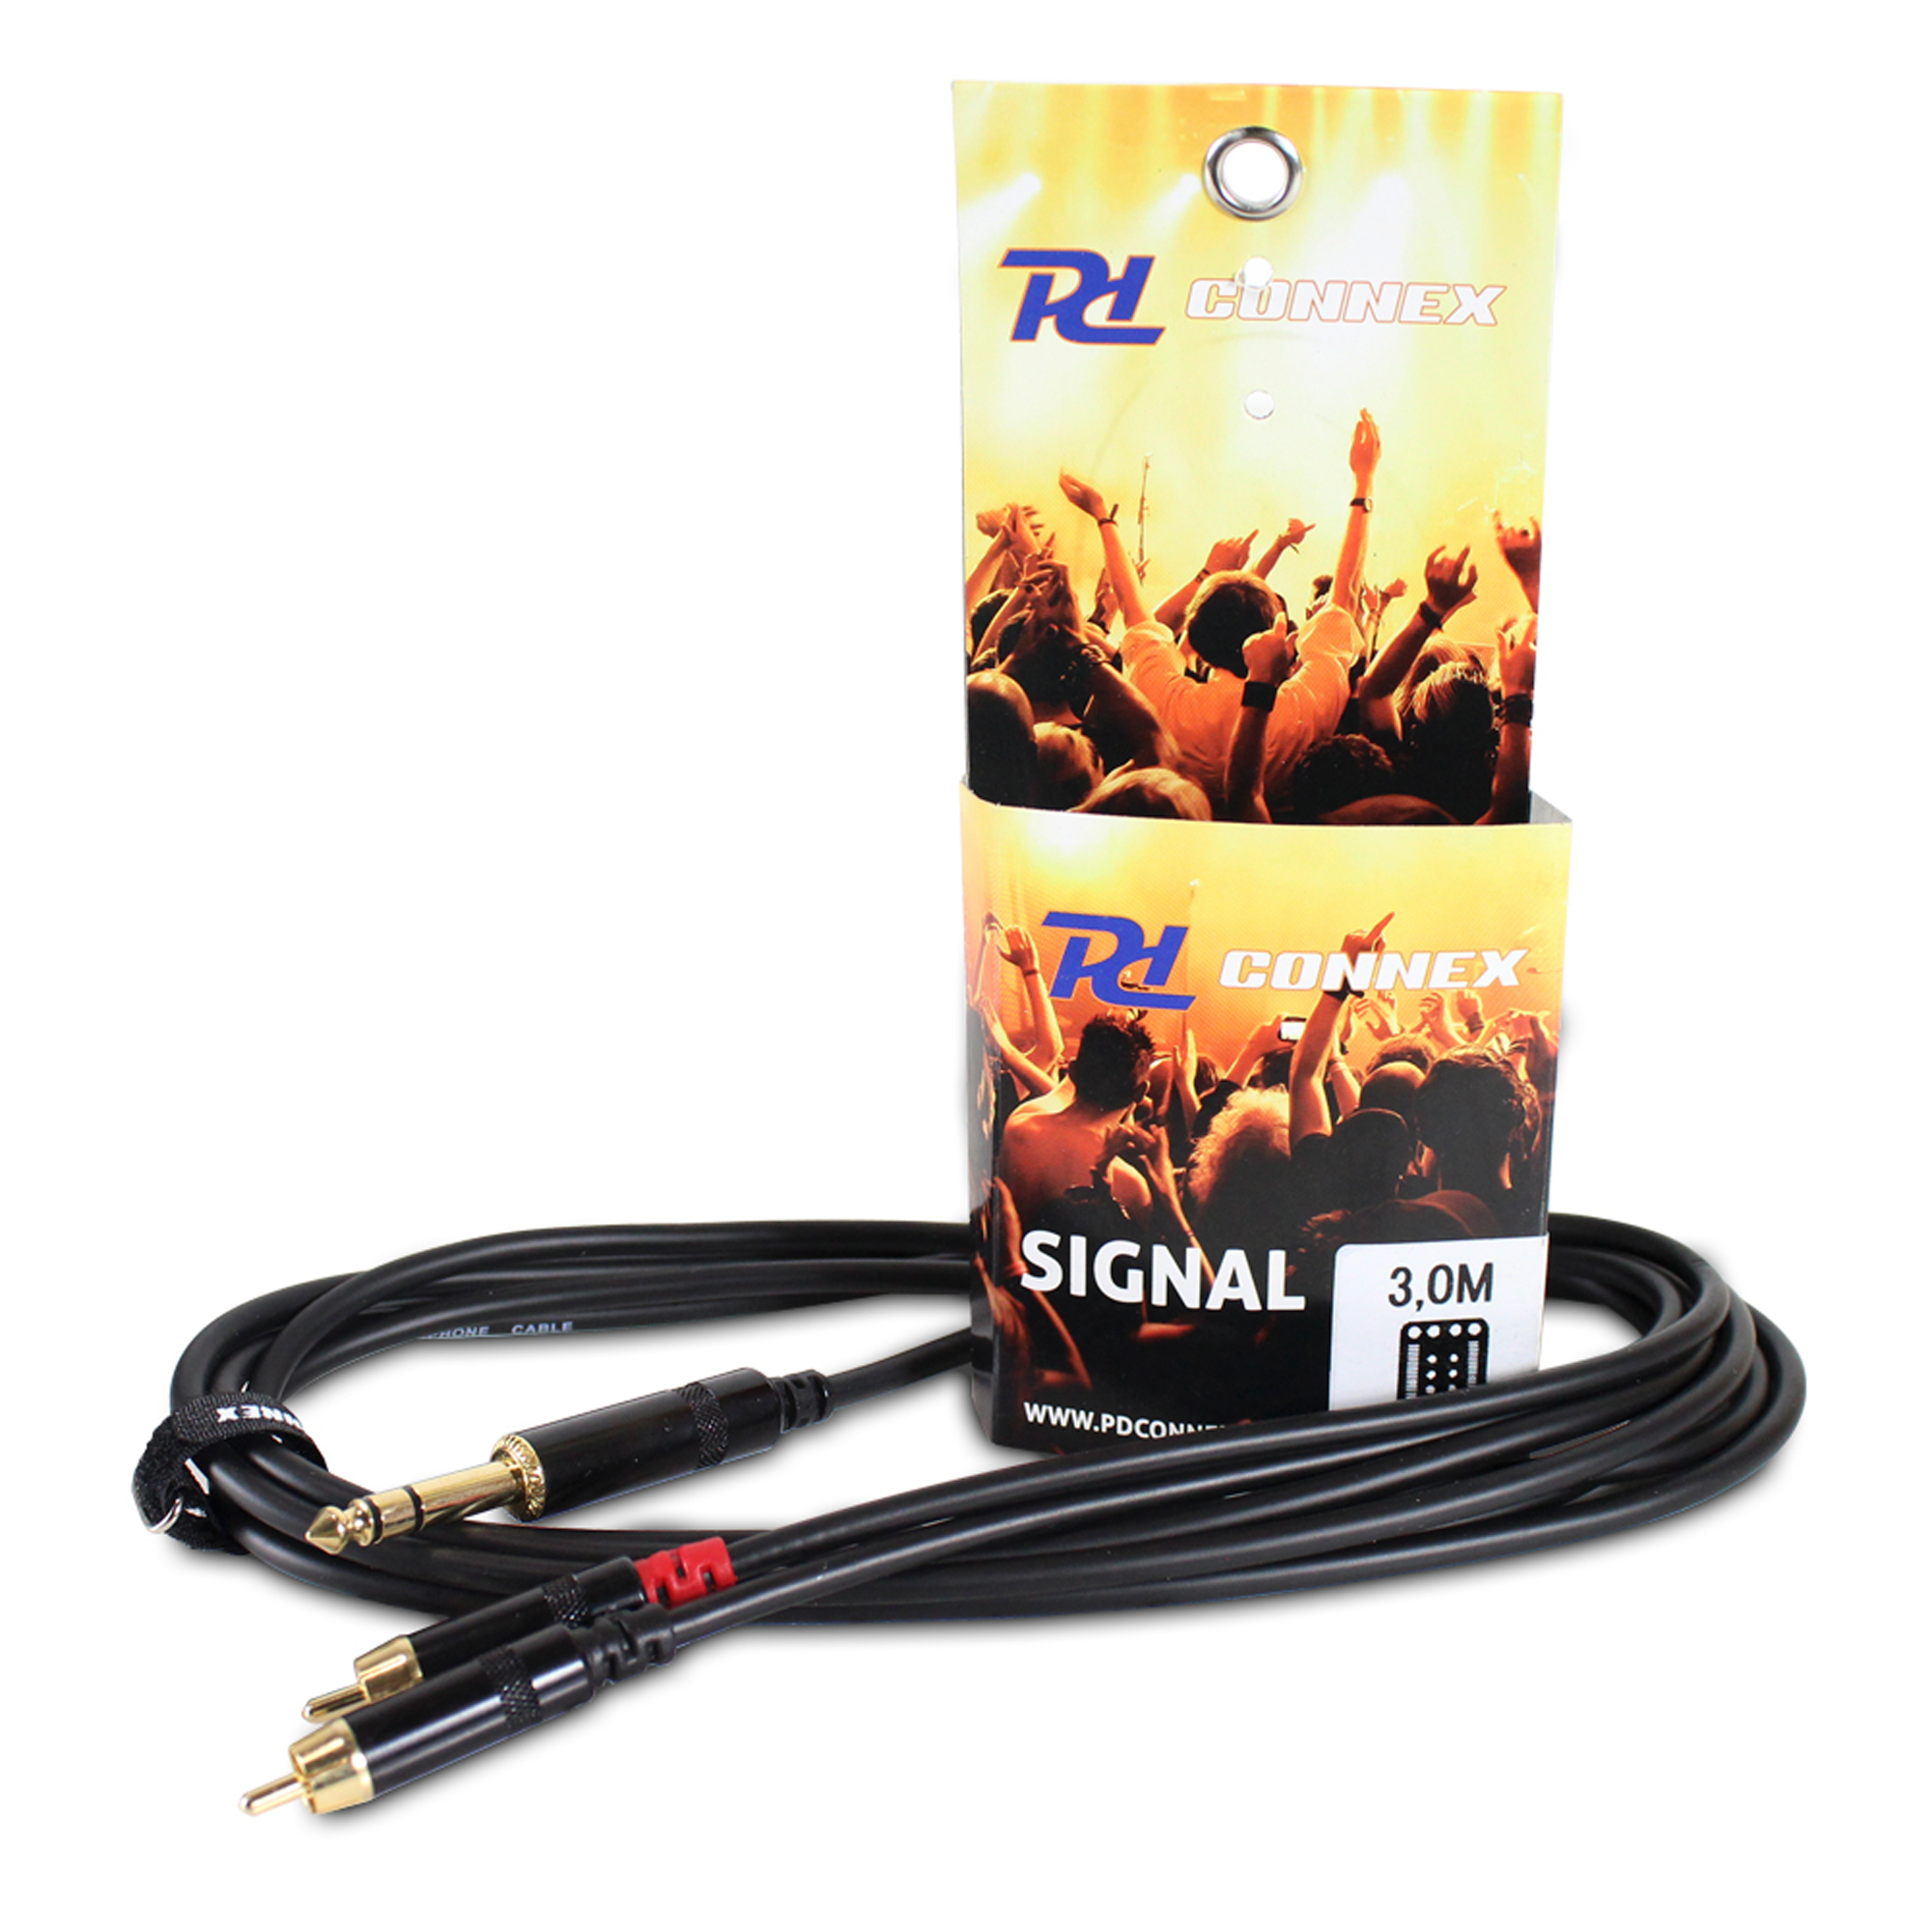 PD Connex 2x RCA Male - 6.35mm Stereo Jack 3M Cable